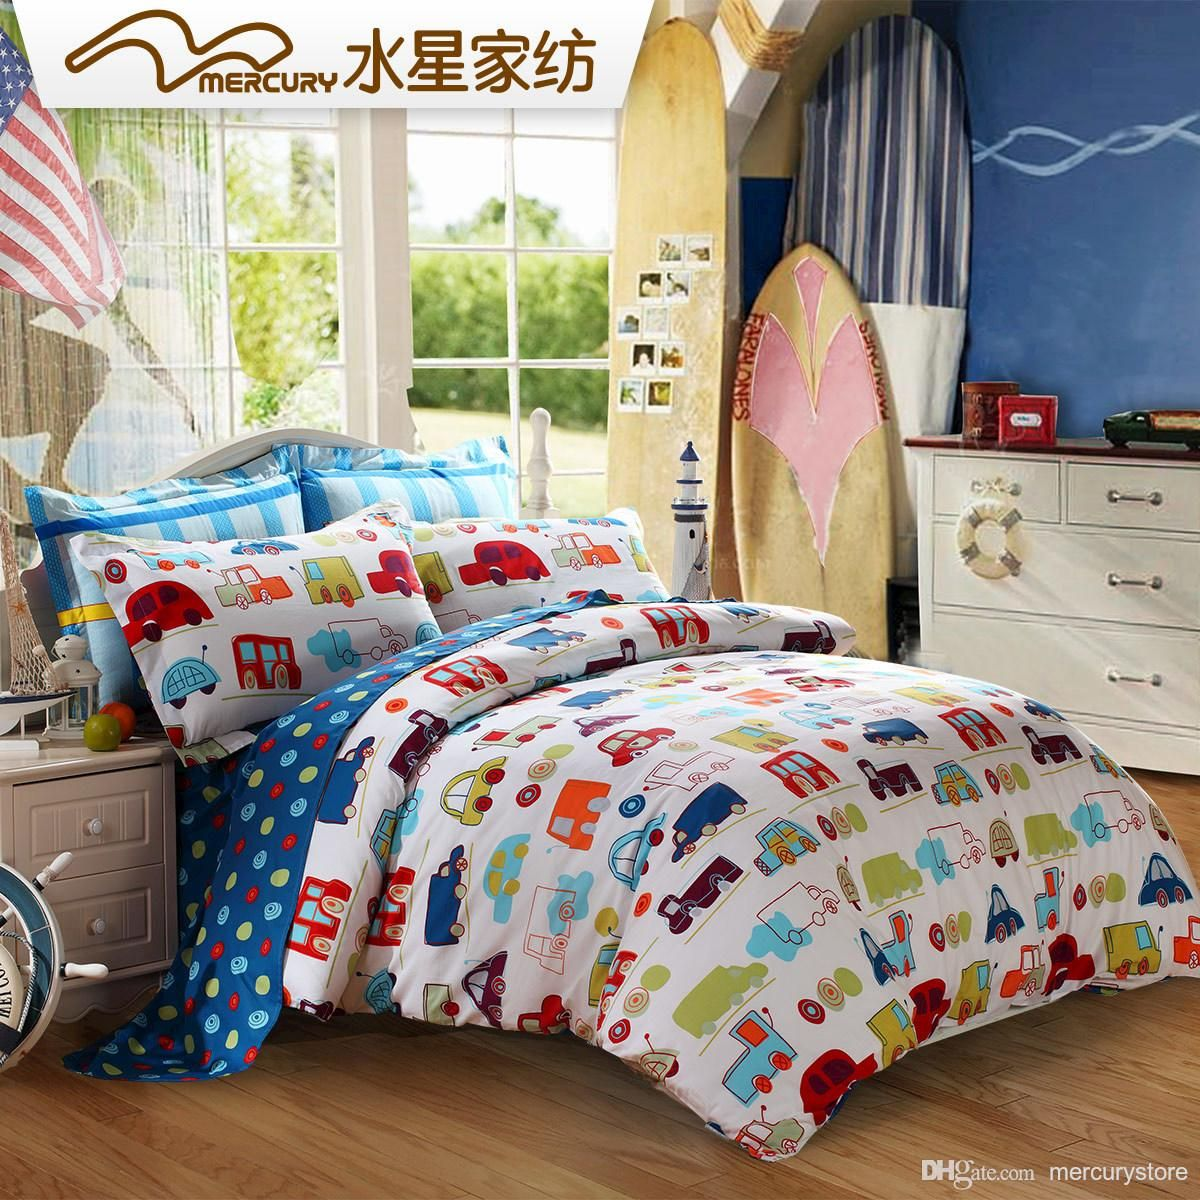 Mercury Home Textile 100%cotton Printed Bedding Sets With Duvet Cover Bed  Sheet King/Queen/Twin Size Cartoon Car World